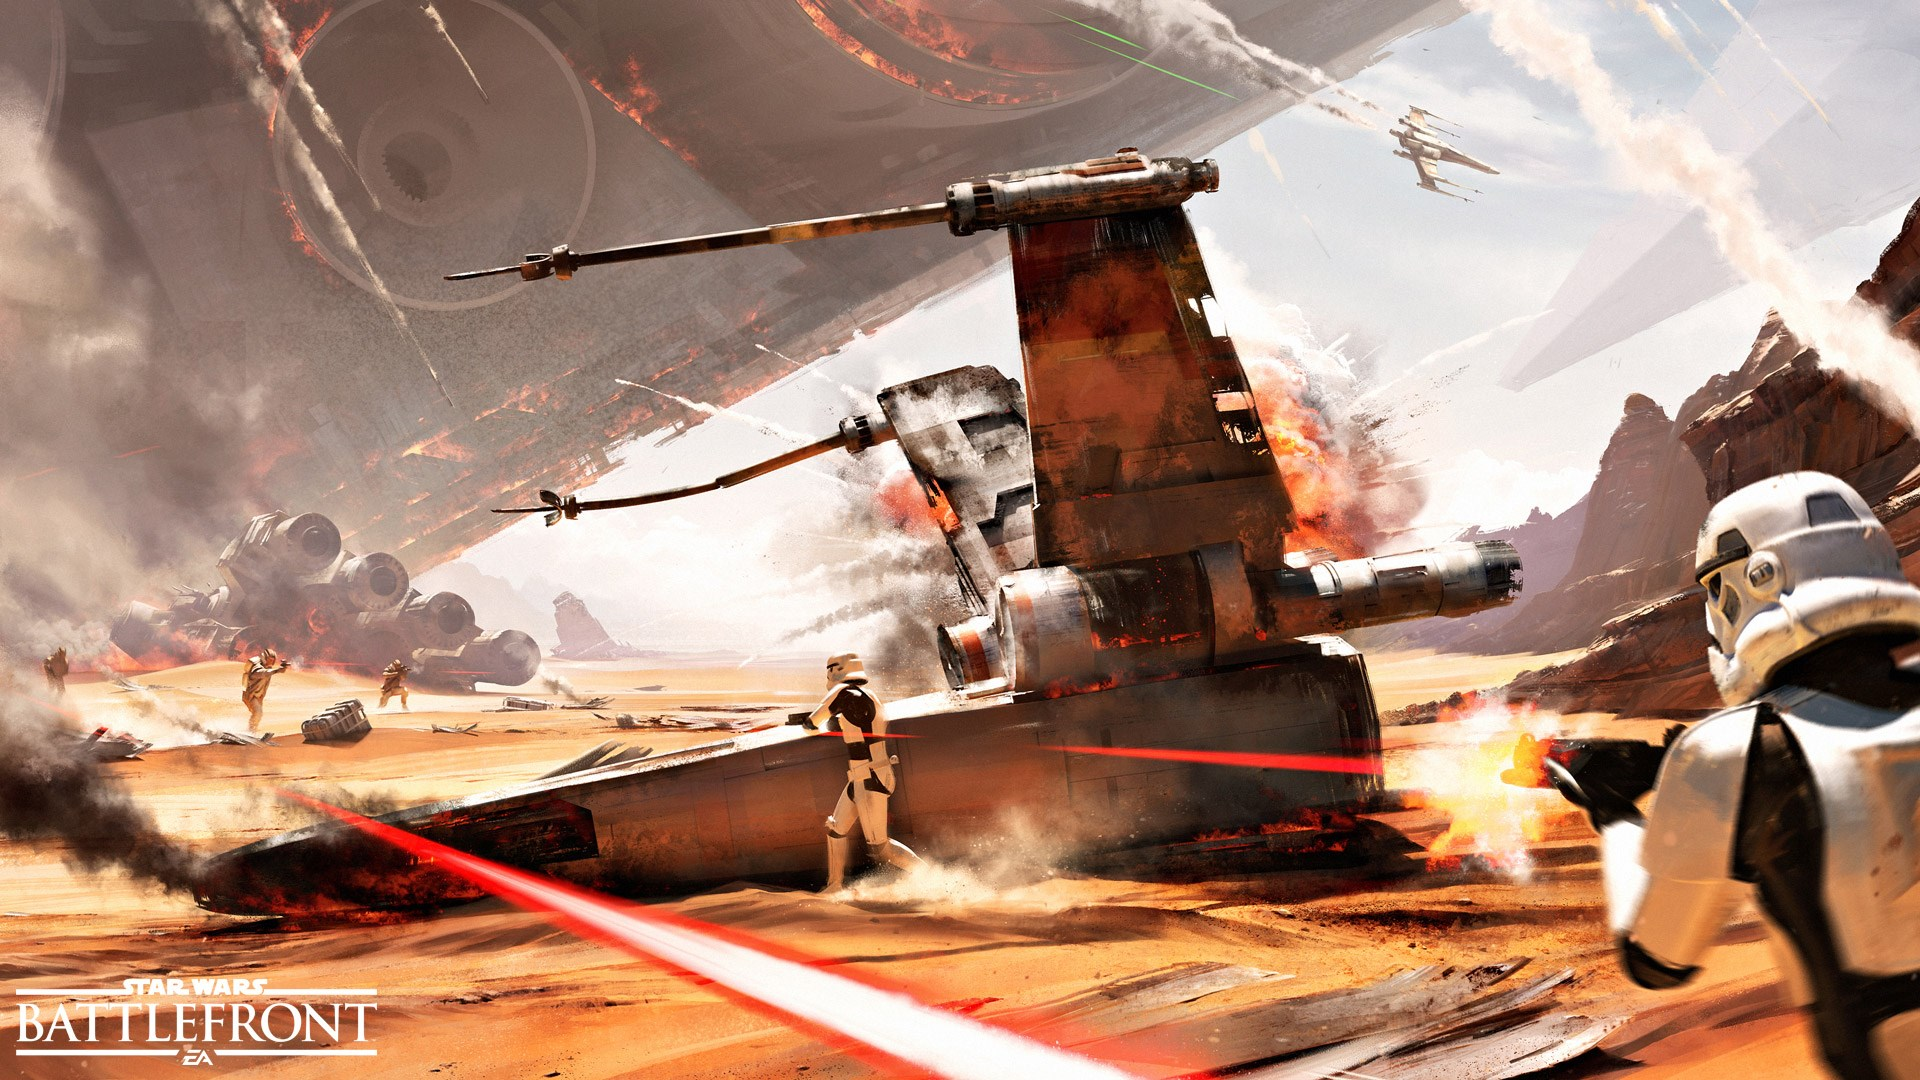 Amazing-star-wars-battlefront-pic-kB-Hartwell-Robin-wallpaper-wp3602407